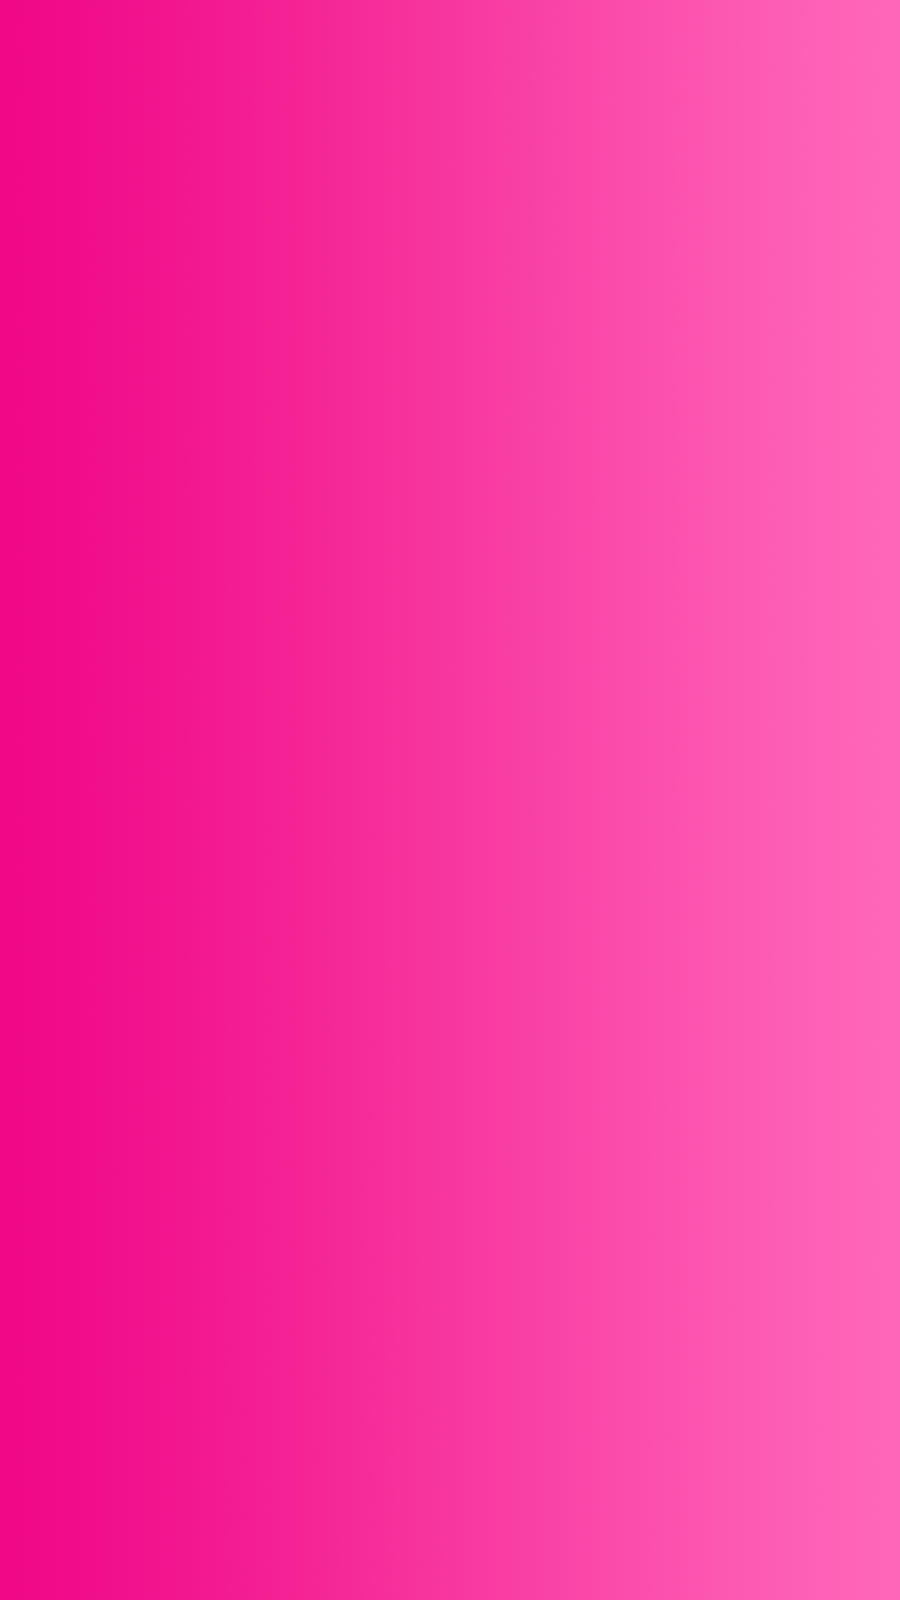 Pink Wallpaper For Phone